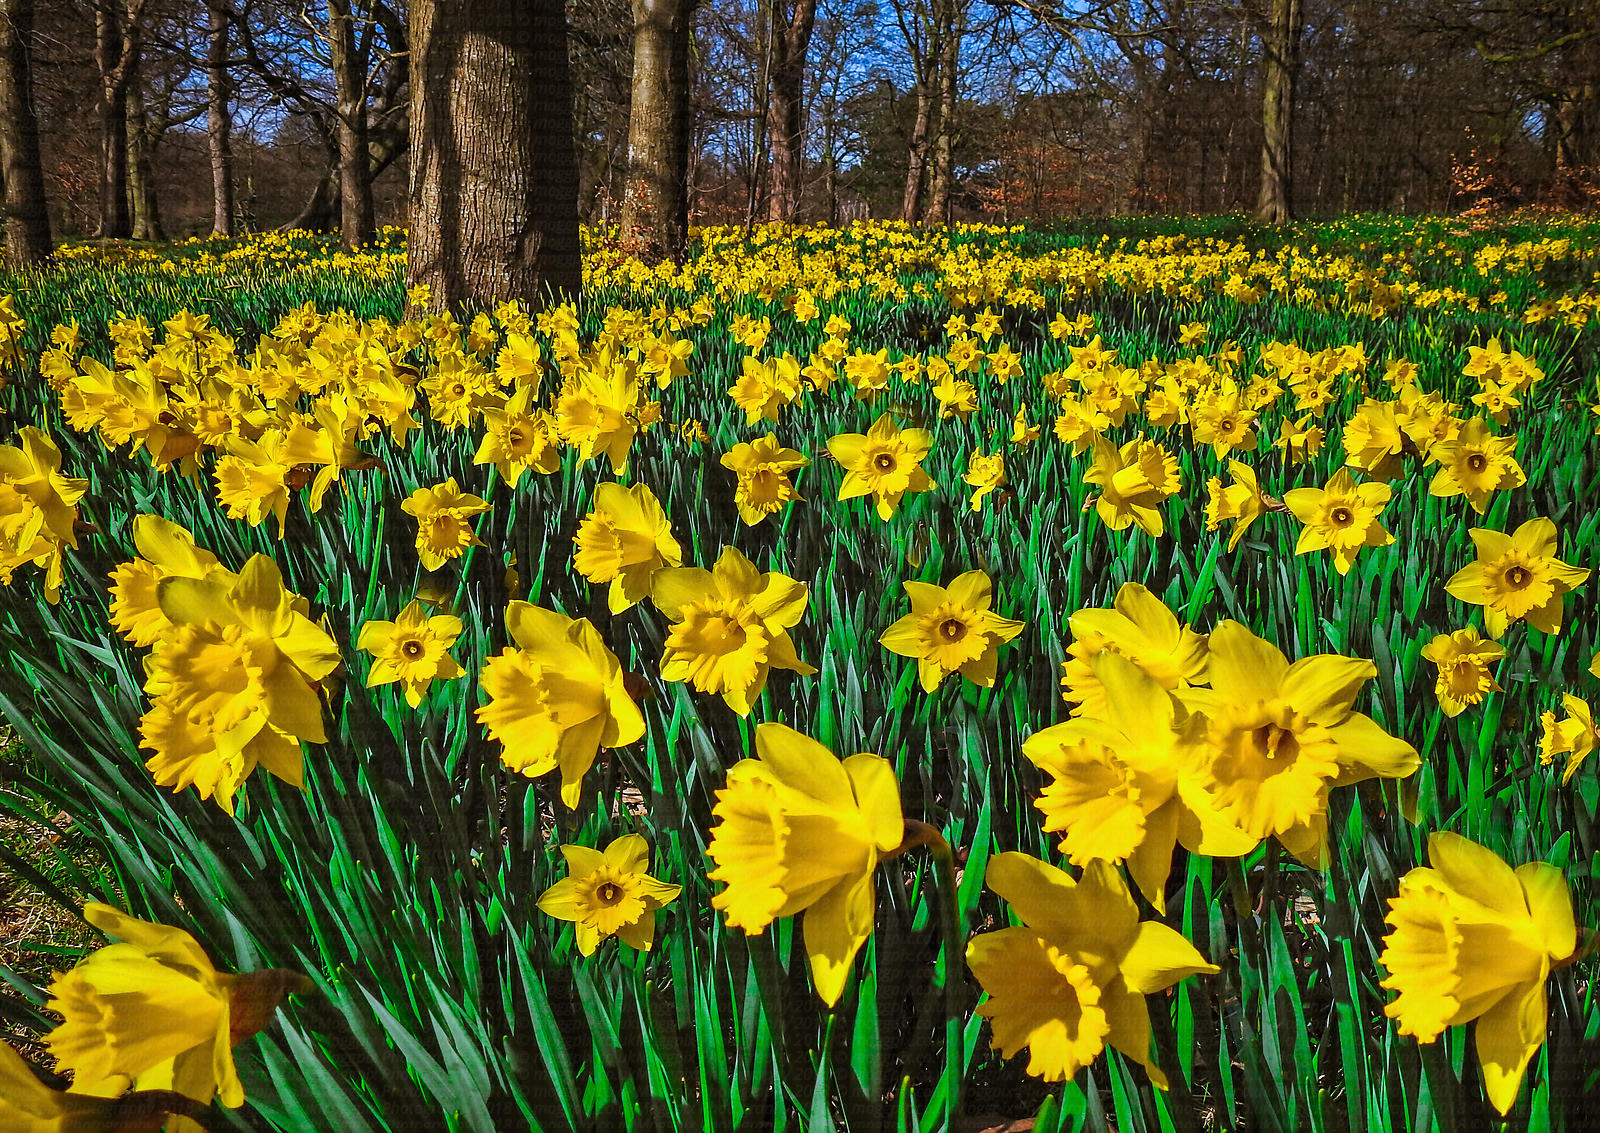 Marie Curie Field of Hope, Sefton Park